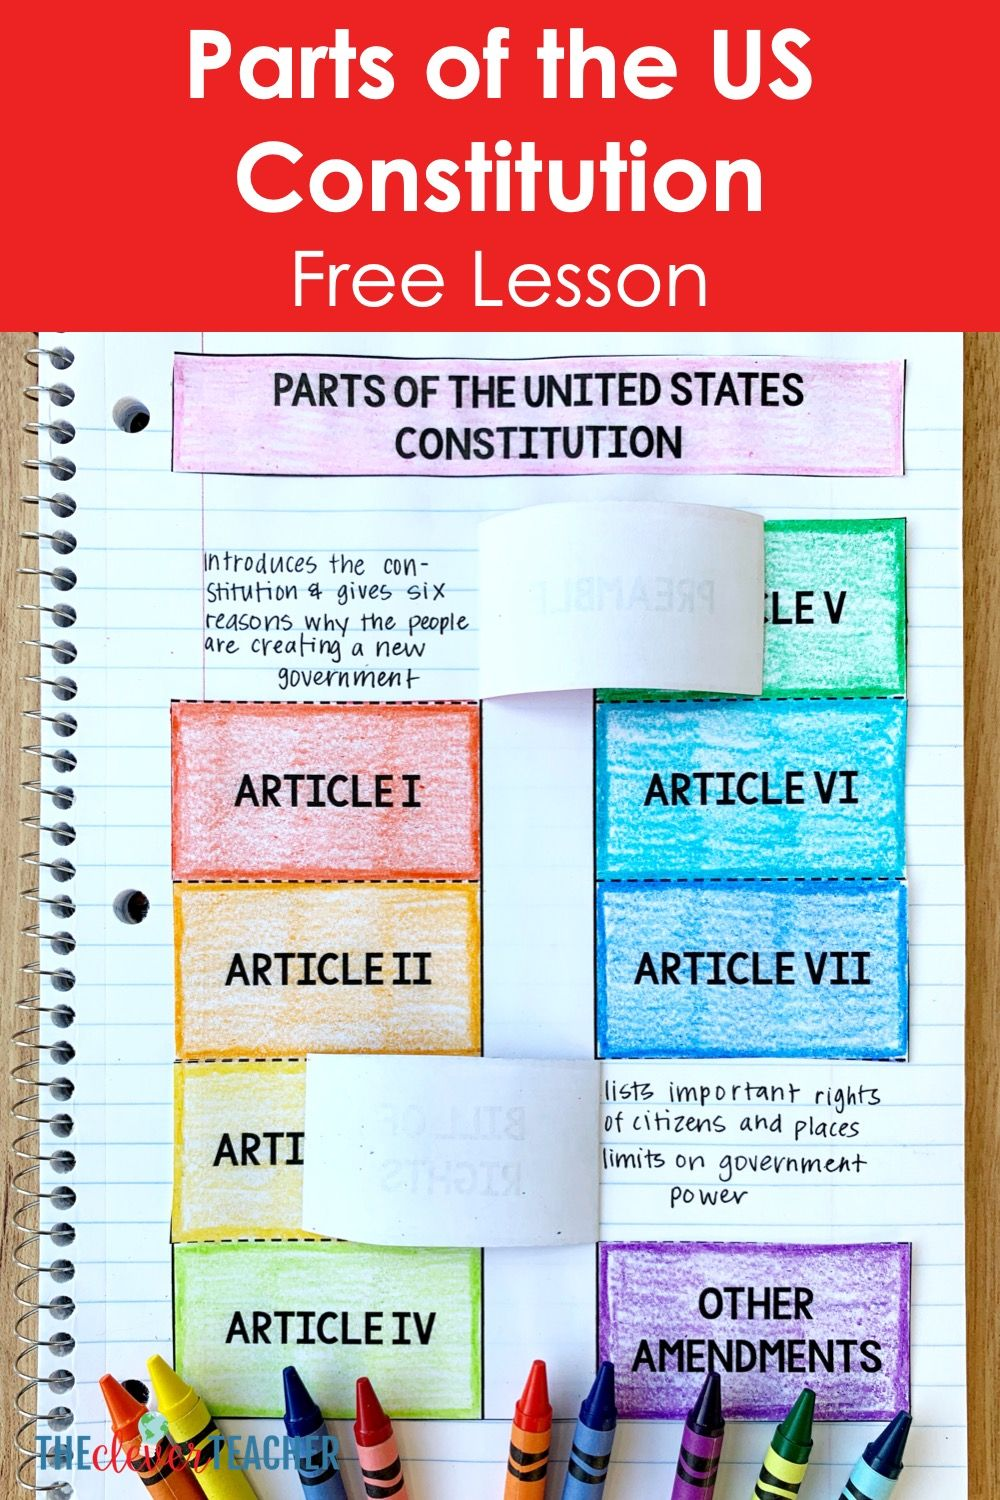 Photo of Free Parts of the US Constitution lesson